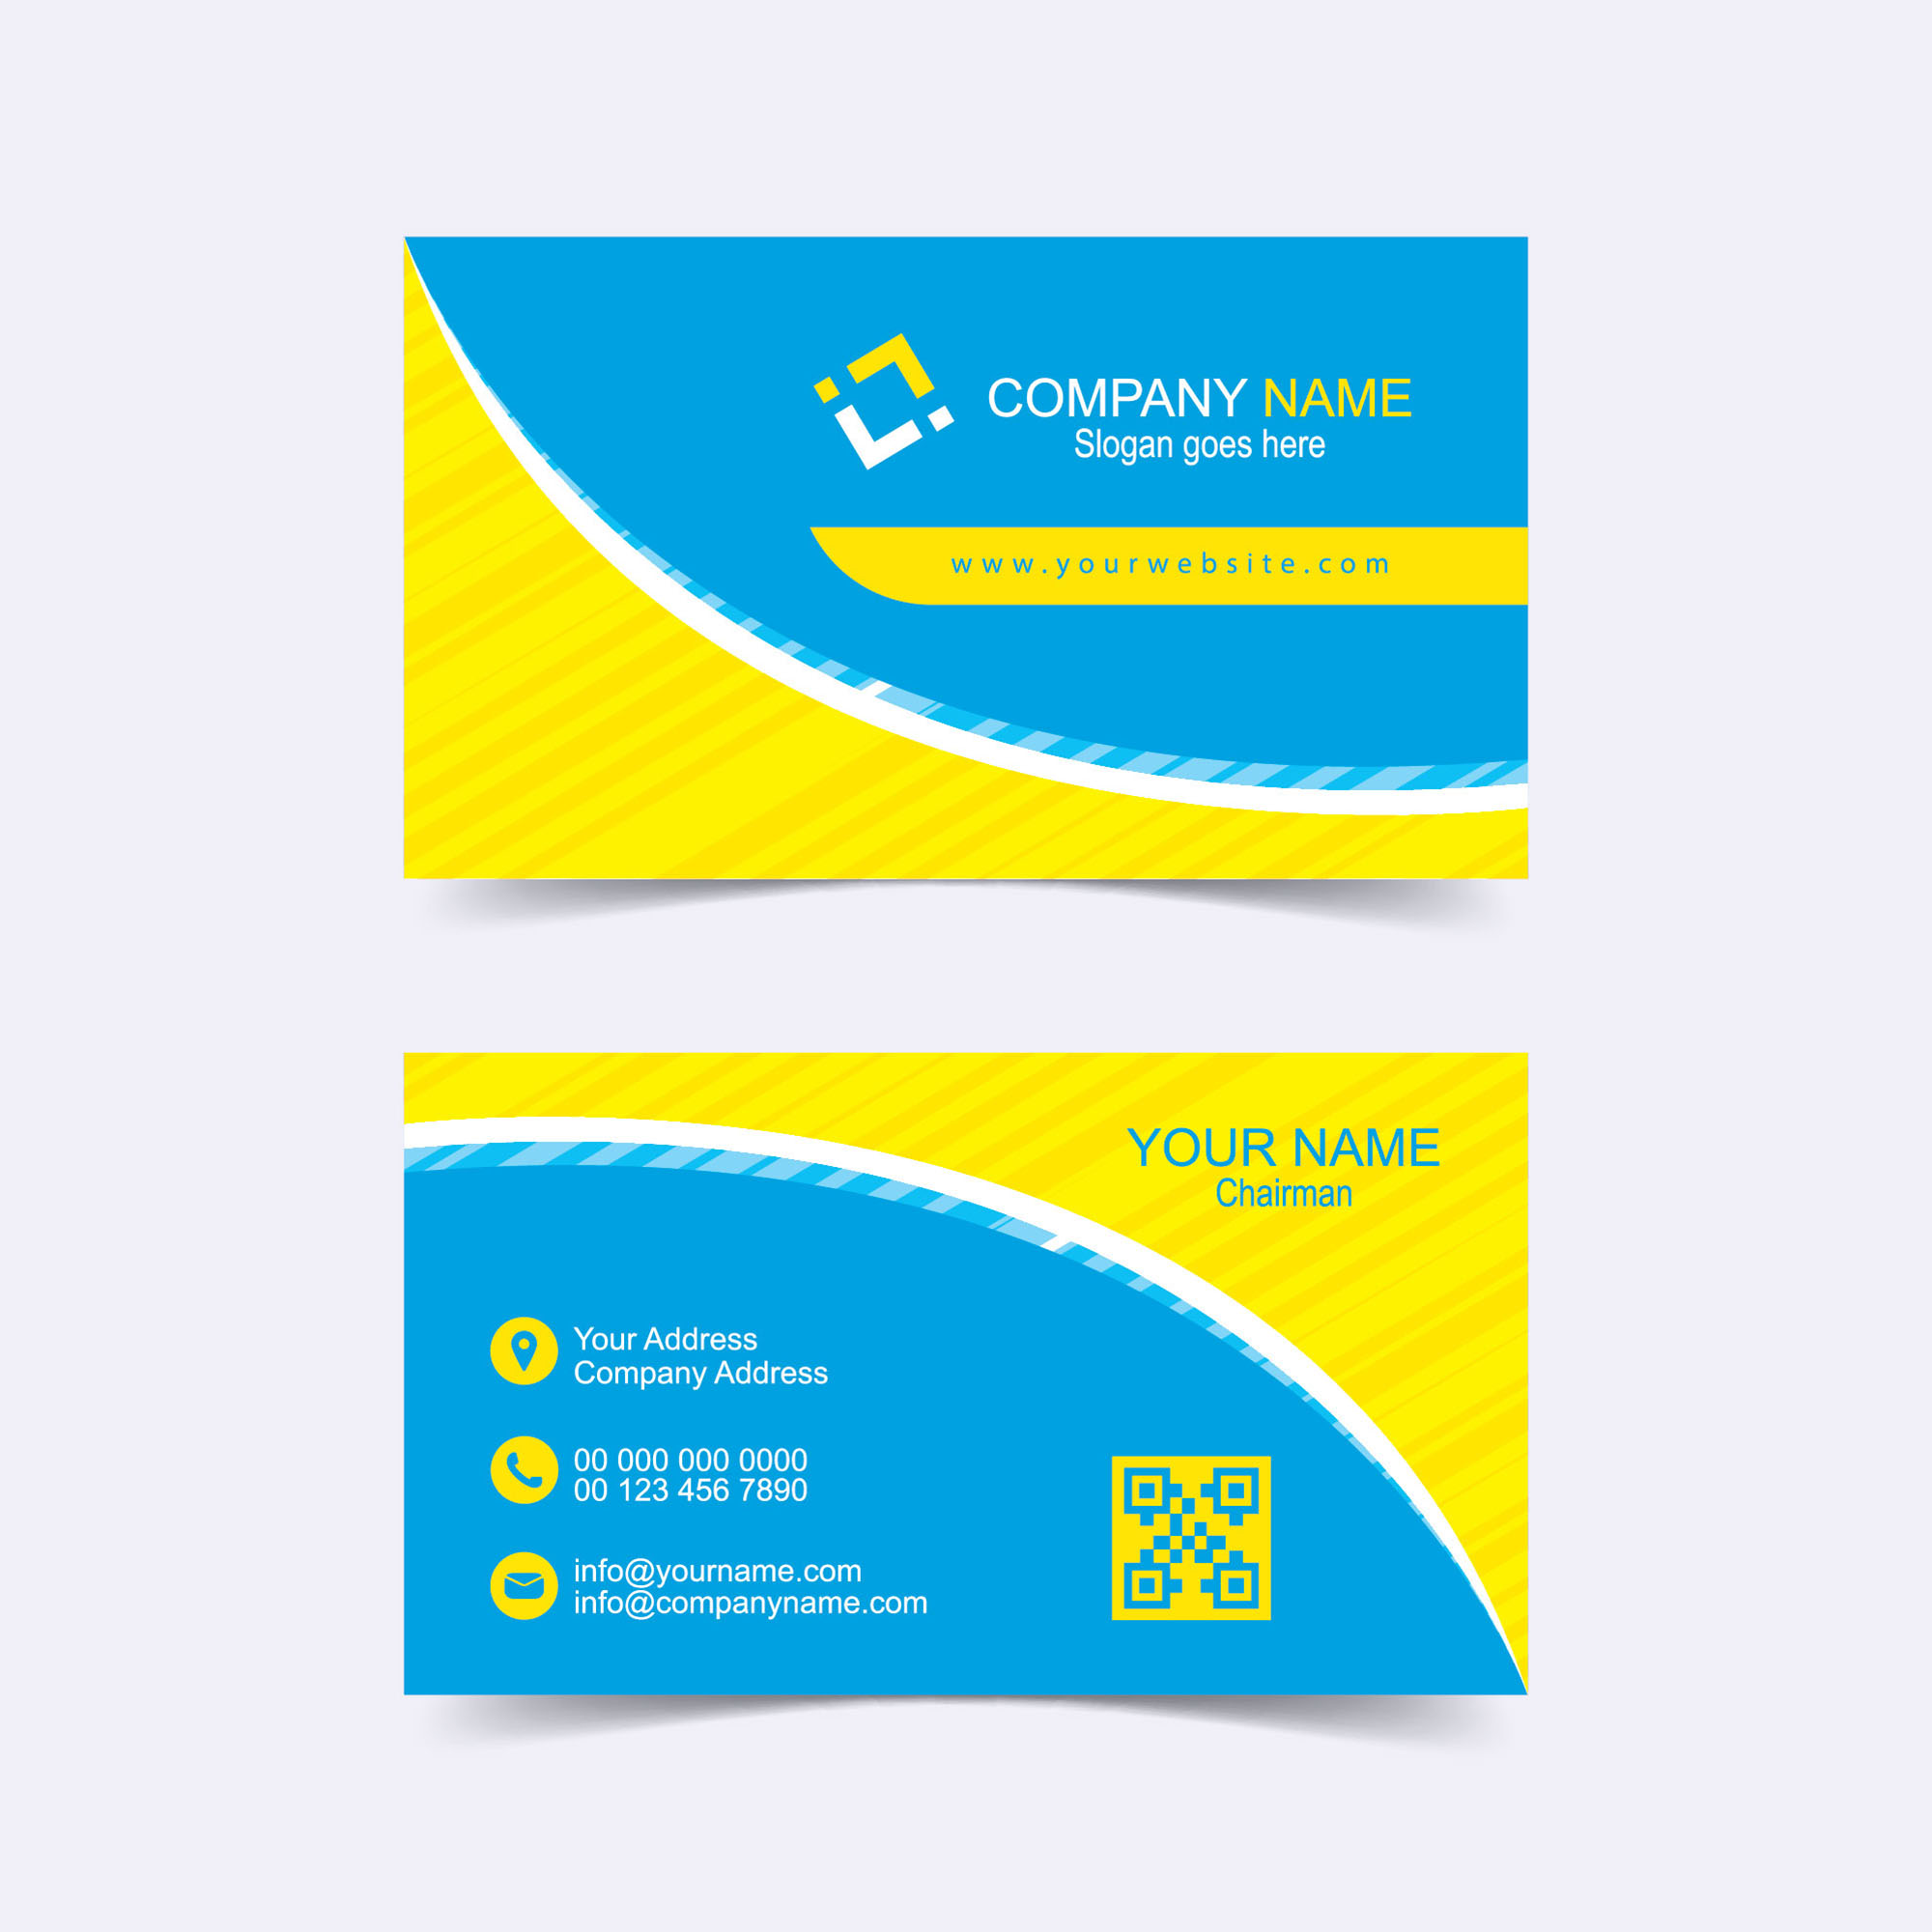 Free corporate business card template wisxi free corporate business card business card business cards business card design business card template design templates wajeb Images